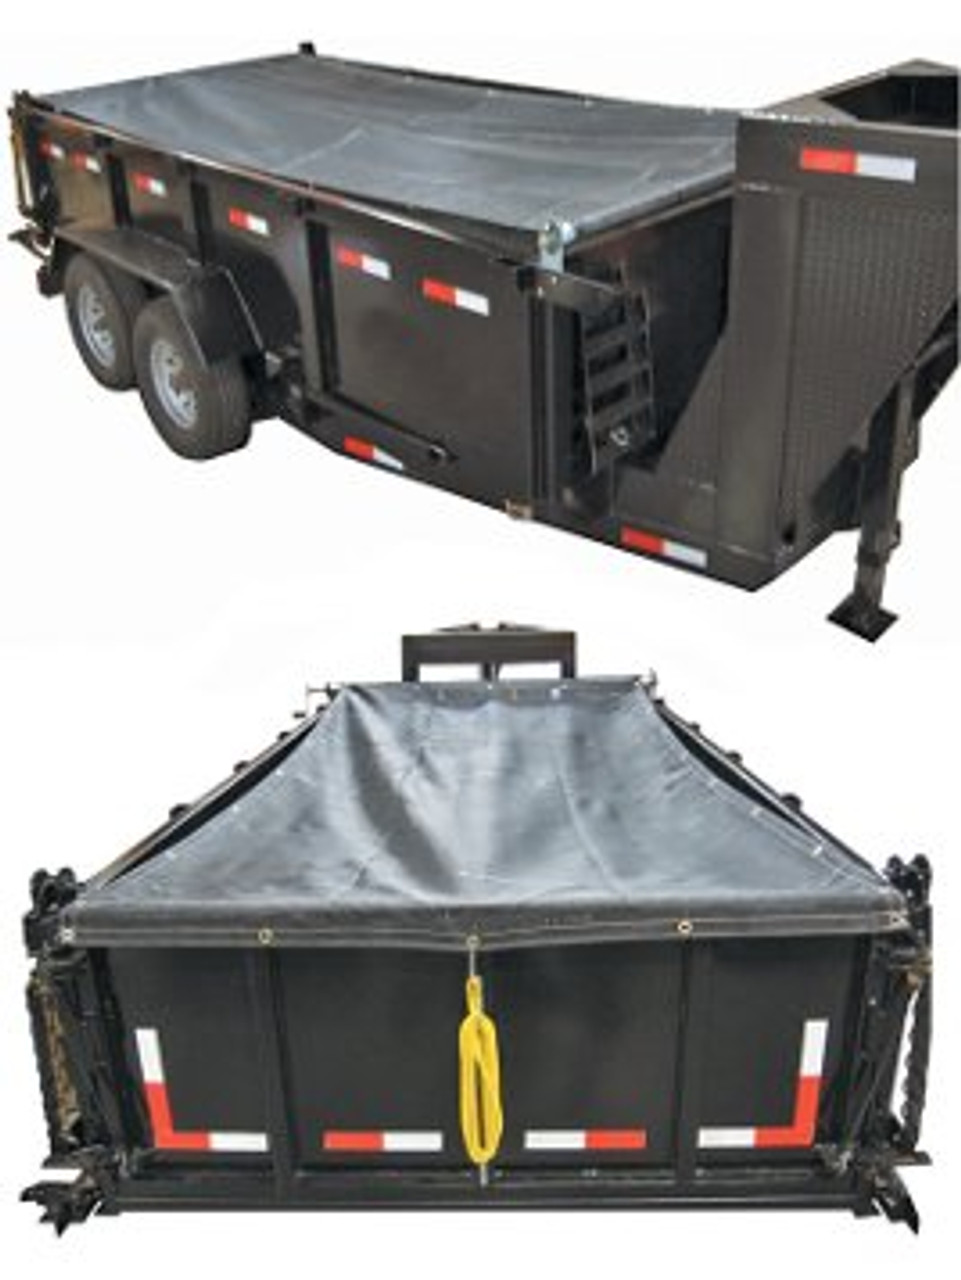 DTTK720 --- 7' x 20' Dump Trailer Tarp Kit